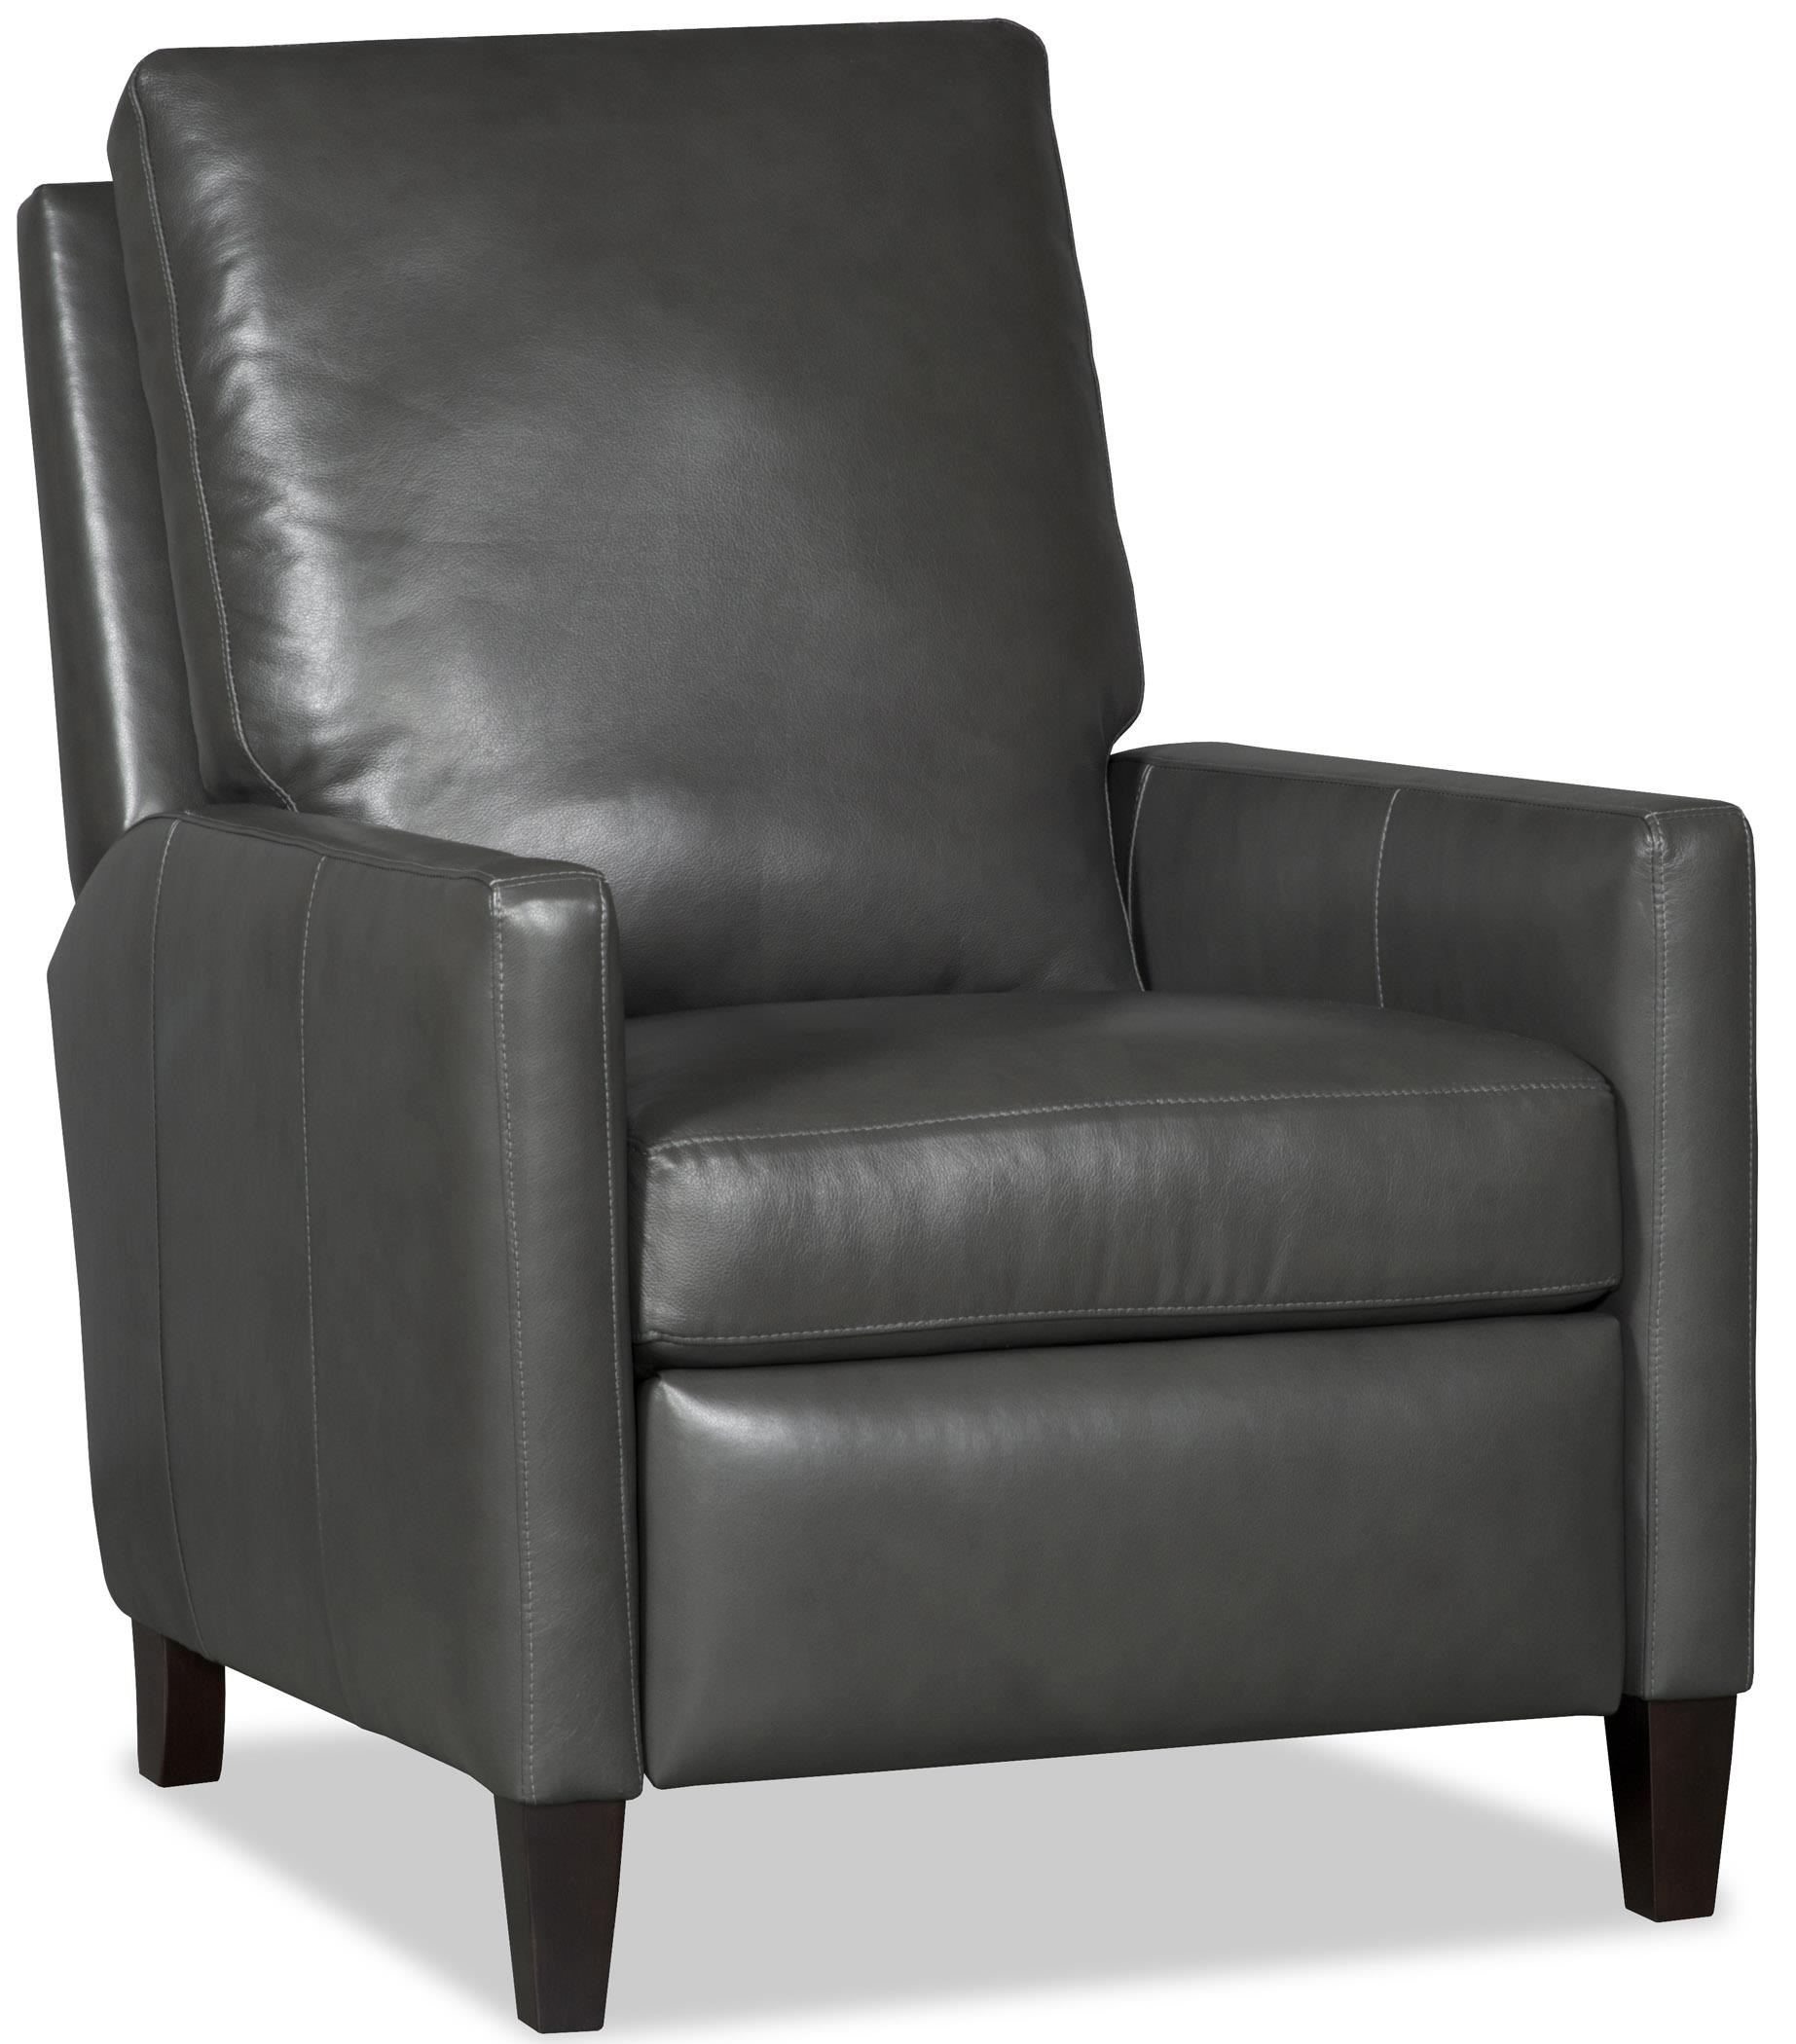 Bradington Young Chairs That Recline Castiel 3 Way